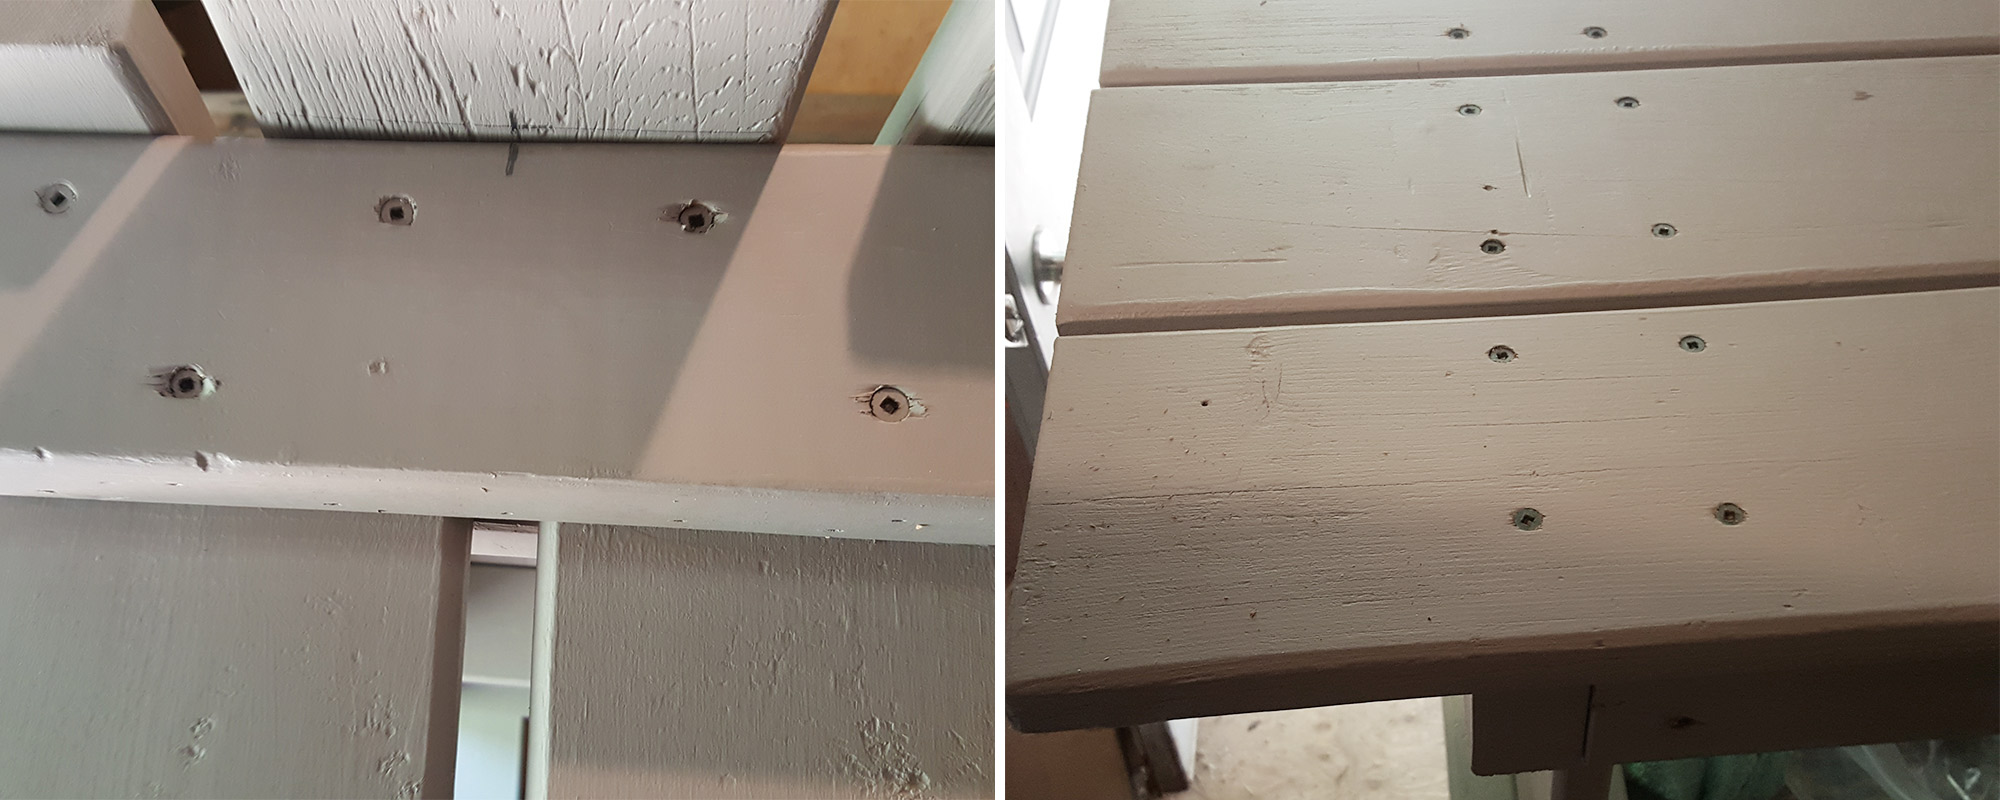 Left: The middle board screwed in place. Right: Boards screwed in place.